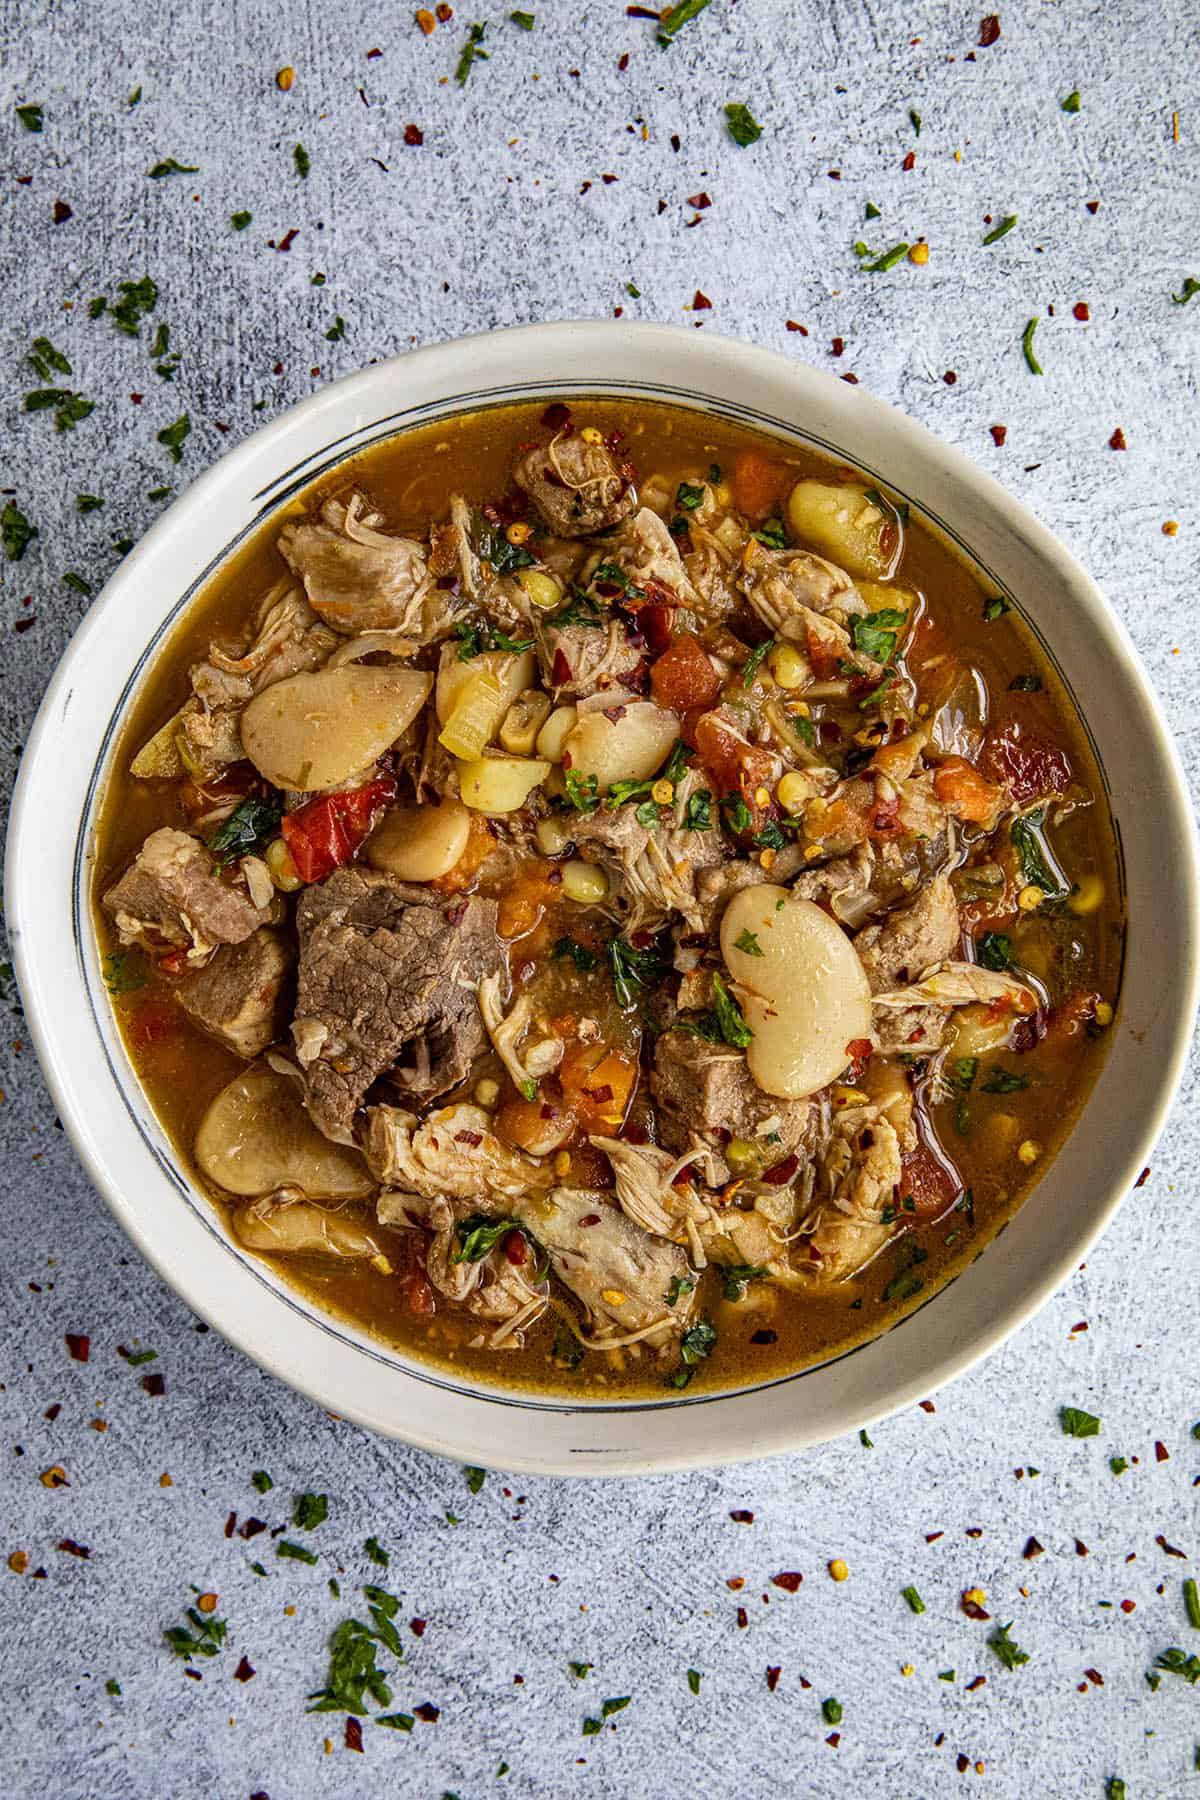 Chunky burgoo stew in a bowl with loads of meat and vegetables